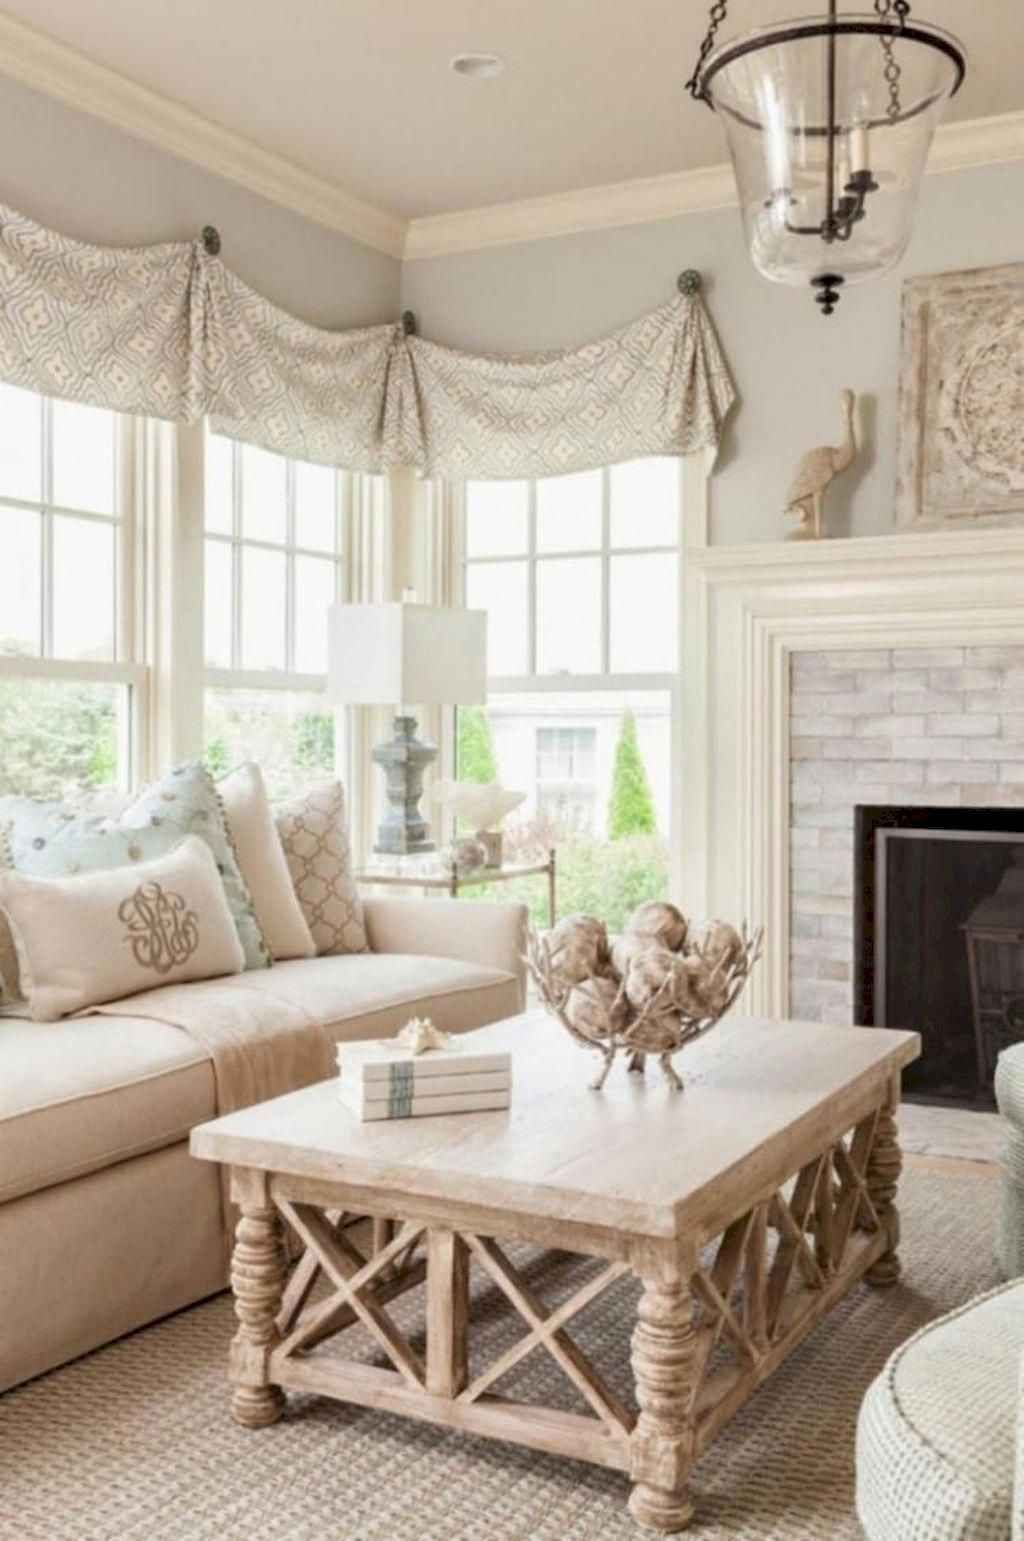 10 Incredible French Country Living Room Decor Ideas Country Living Room Living Room Decor Country French Living Rooms